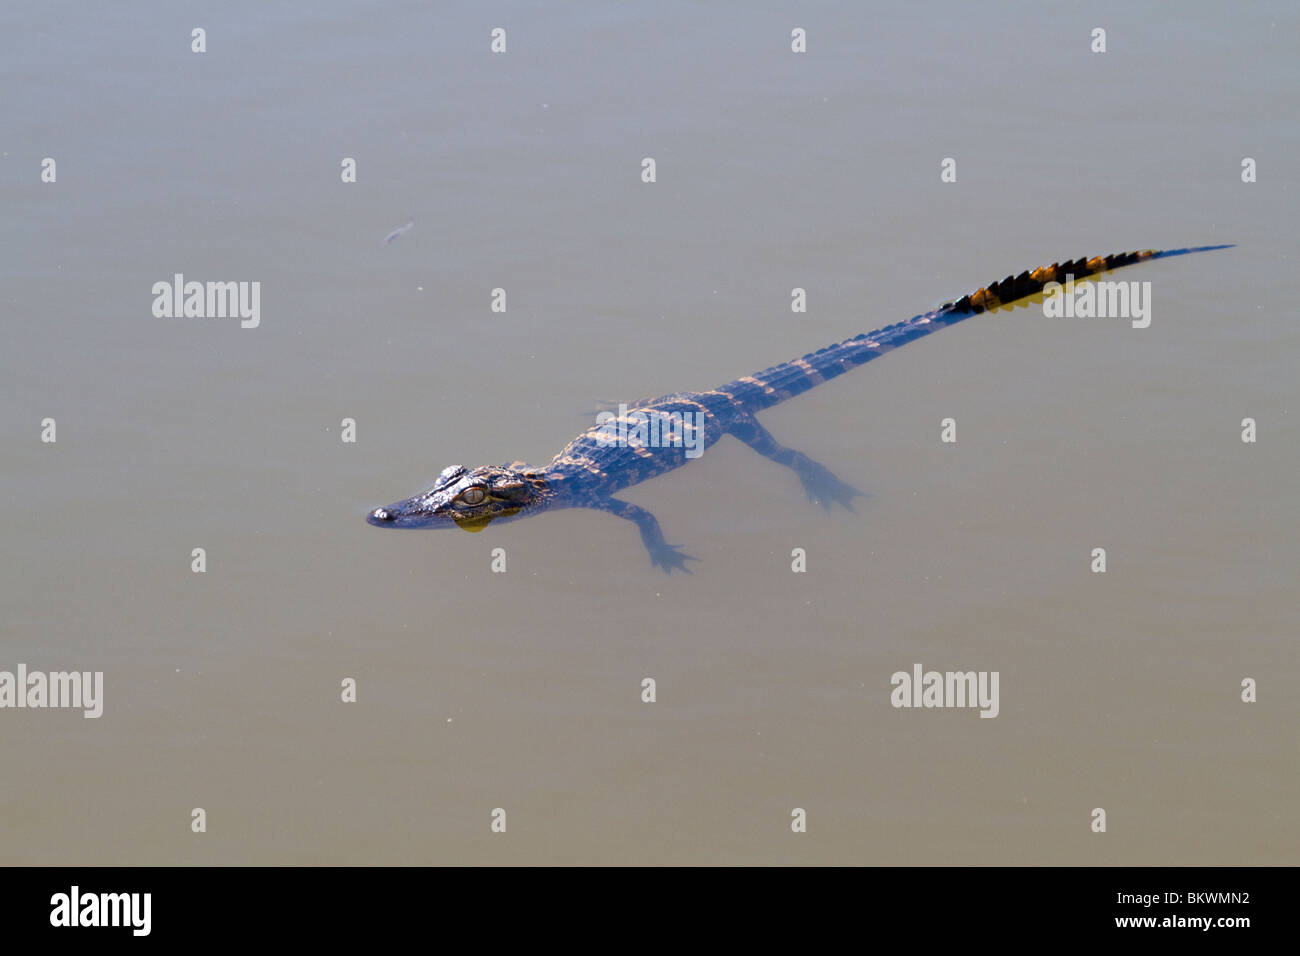 A young North American alligator hanging in water. Stock Photo